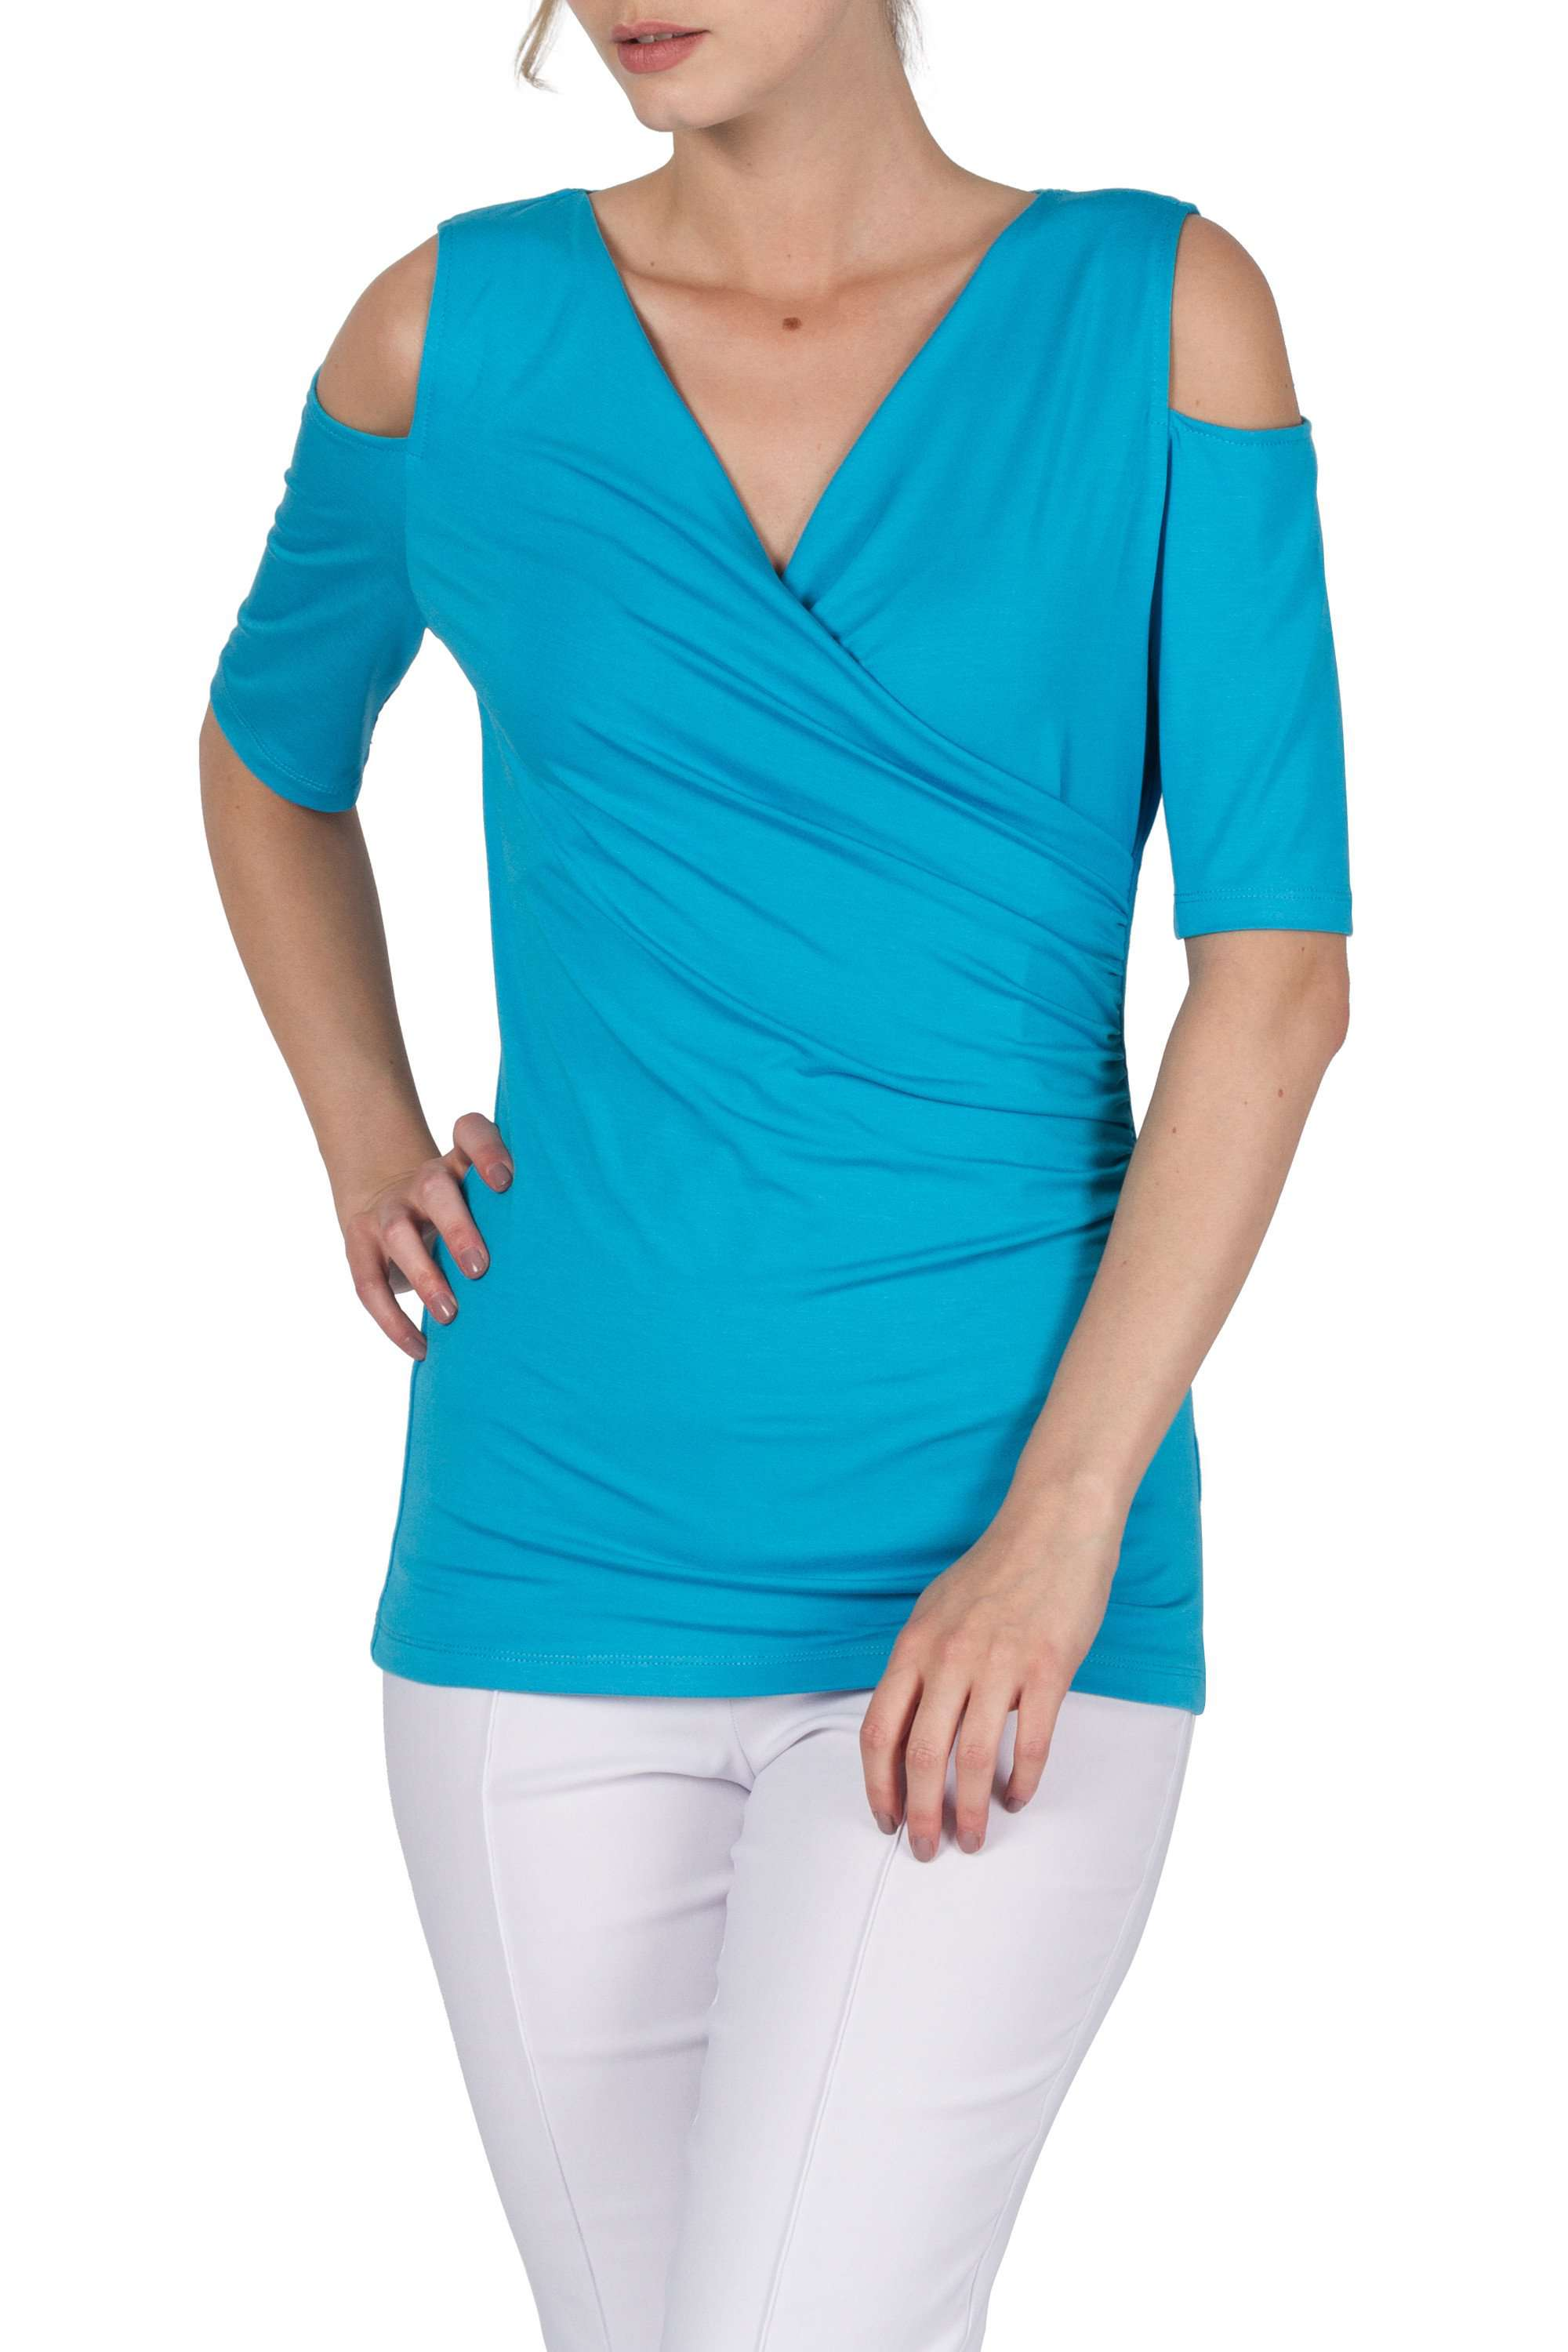 Turquoise Open Shoulder Top-Made In Canada-Designed By Yvonne Marie-Quality Fabric and Fit - Yvonne Marie